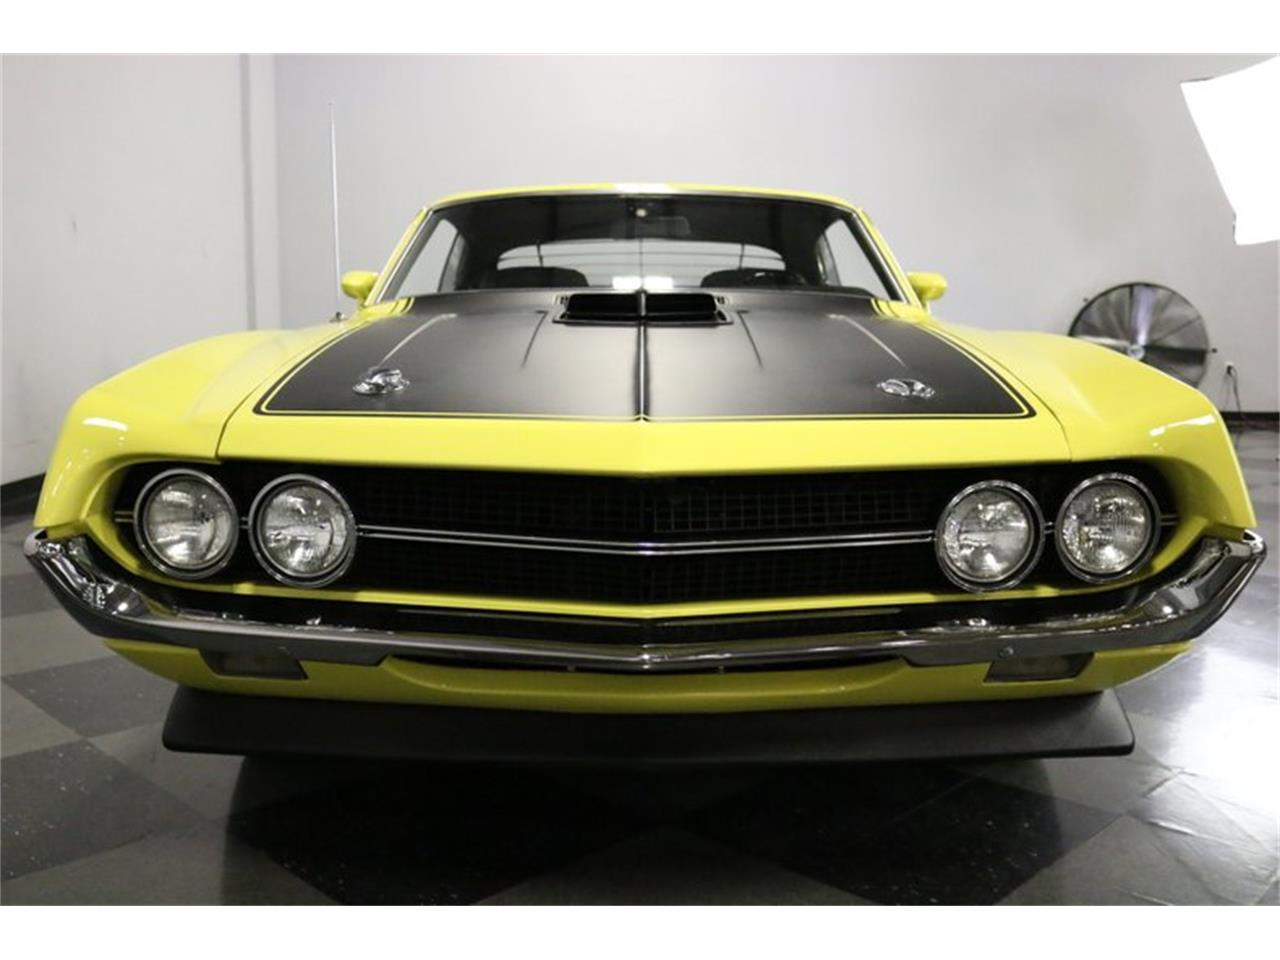 Large Picture of Classic '70 Torino - $63,995.00 Offered by Streetside Classics - Dallas / Fort Worth - NNFR